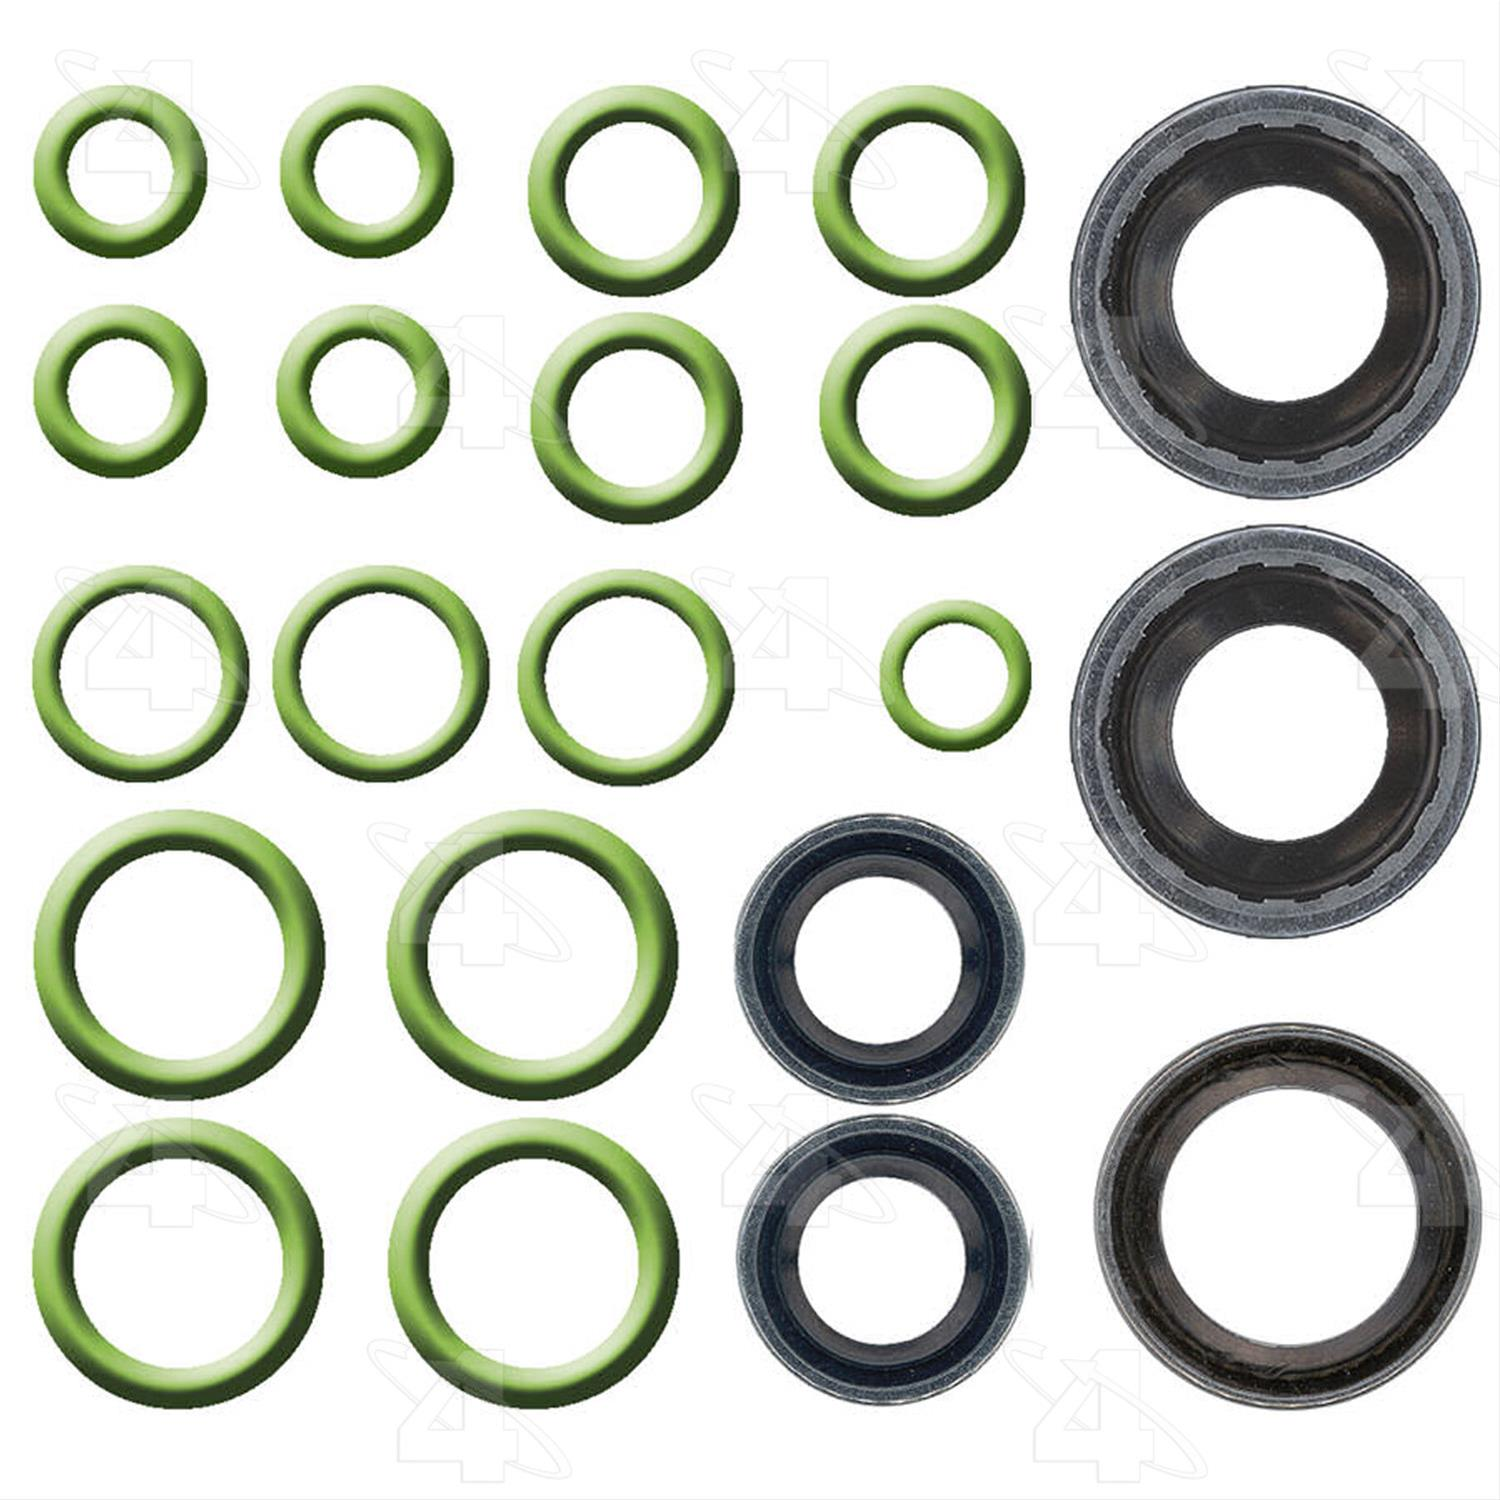 A//C System O-Ring and Gasket Kit-AC System Seal Kit 4 Seasons 26747